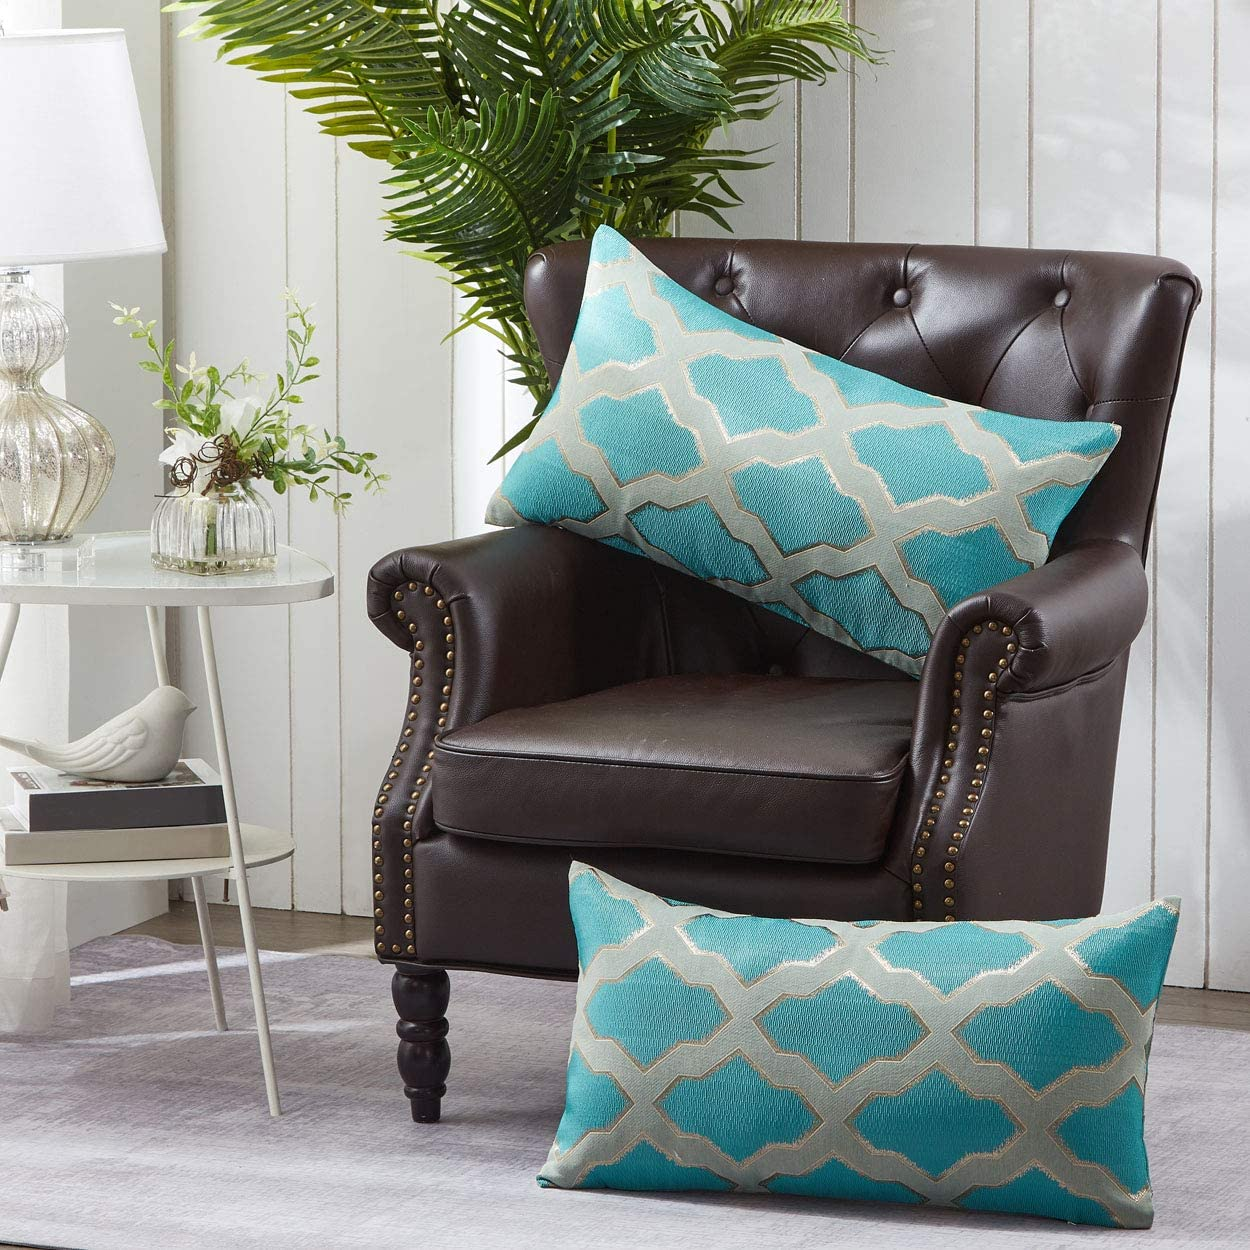 Home Soft Things Jacquard Lumber Pillow Shell 2 Piece Set, 14 x 26 , Safi, Deep Teal